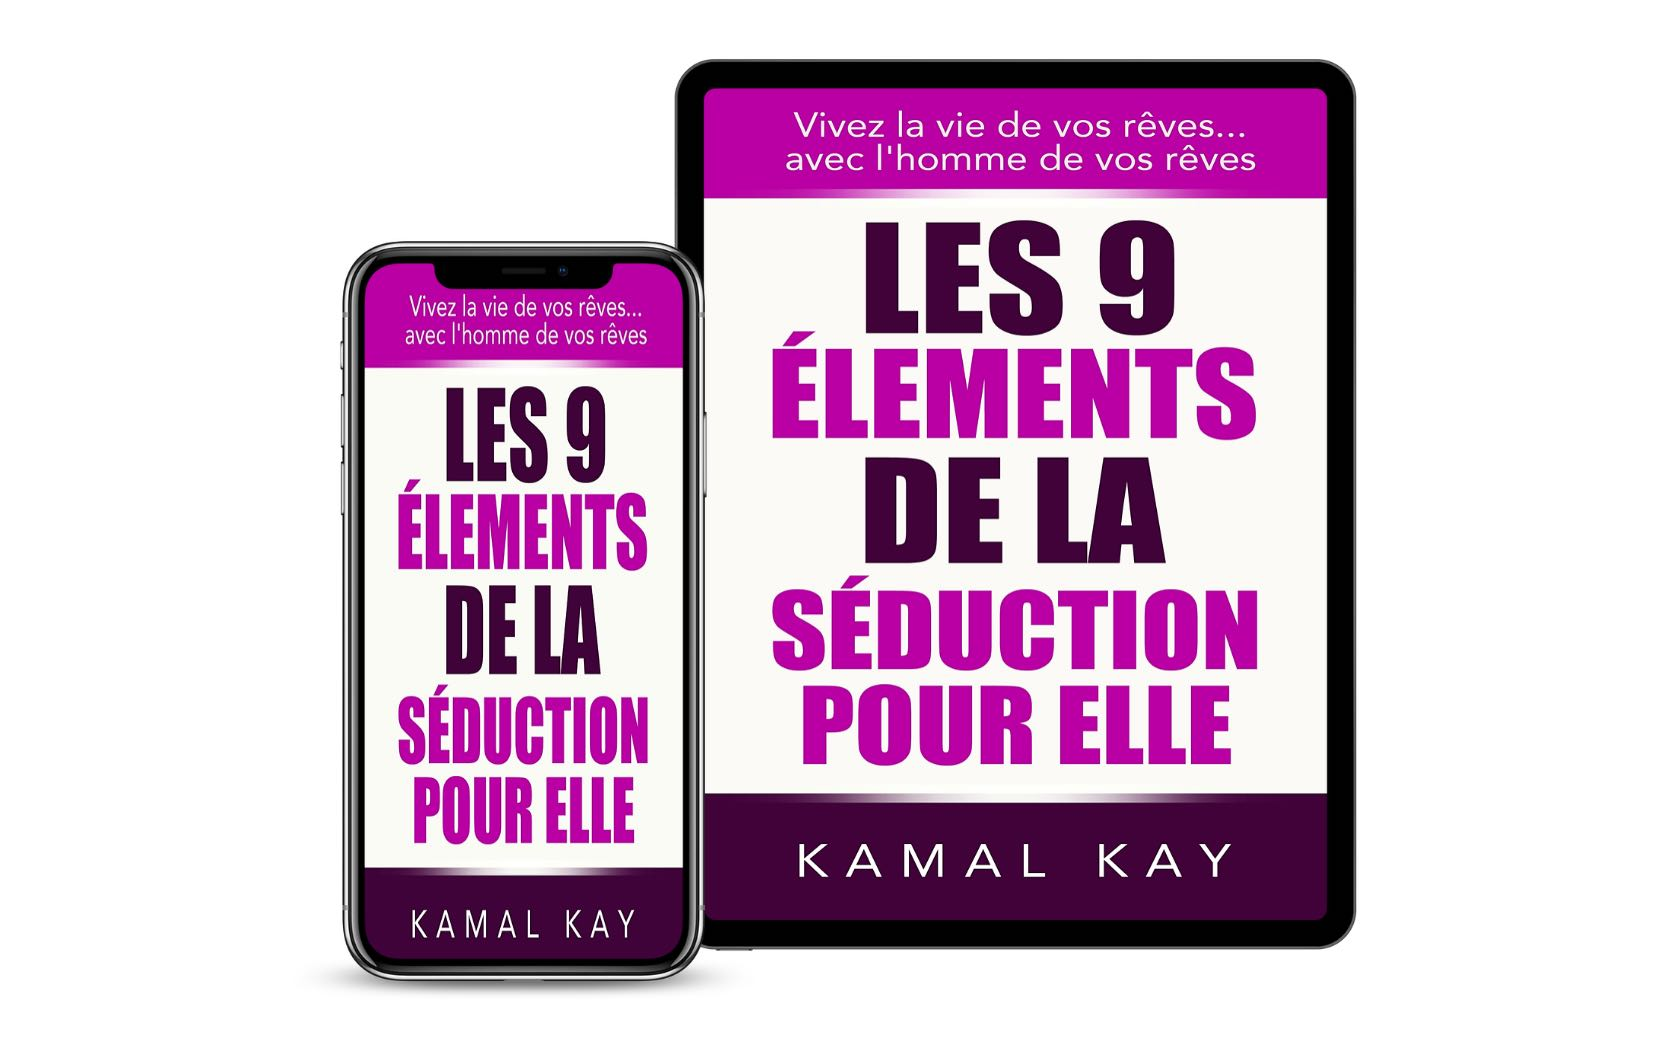 Les 9 Elements De La Seduction